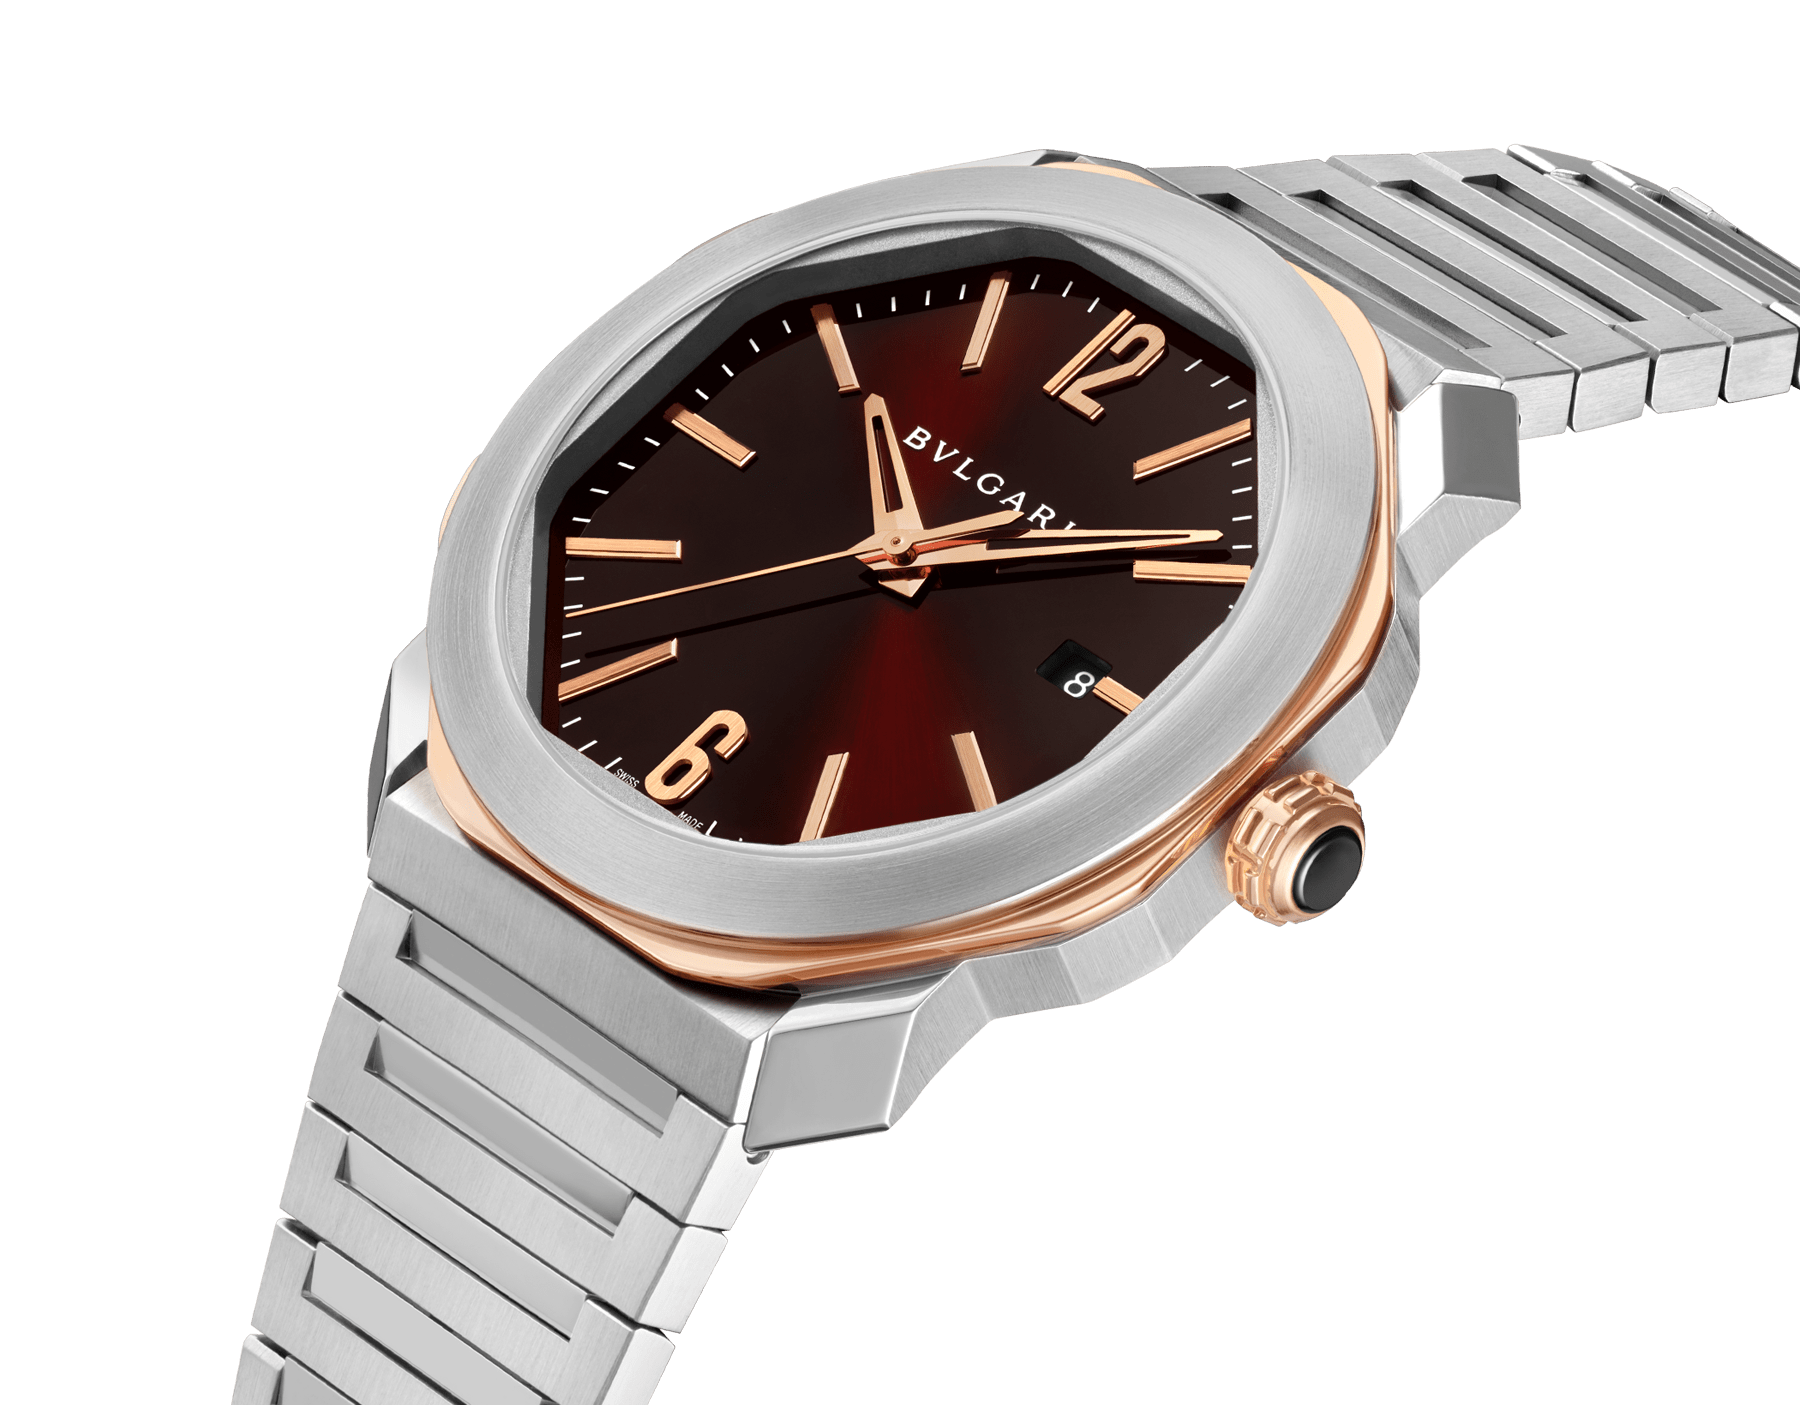 Octo Roma watch with mechanical manufacture movement, automatic winding, stainless steel case and bracelet, 18 kt rose gold octagon and brown dial. Water-resistant up to 50 meters. 103210 image 2